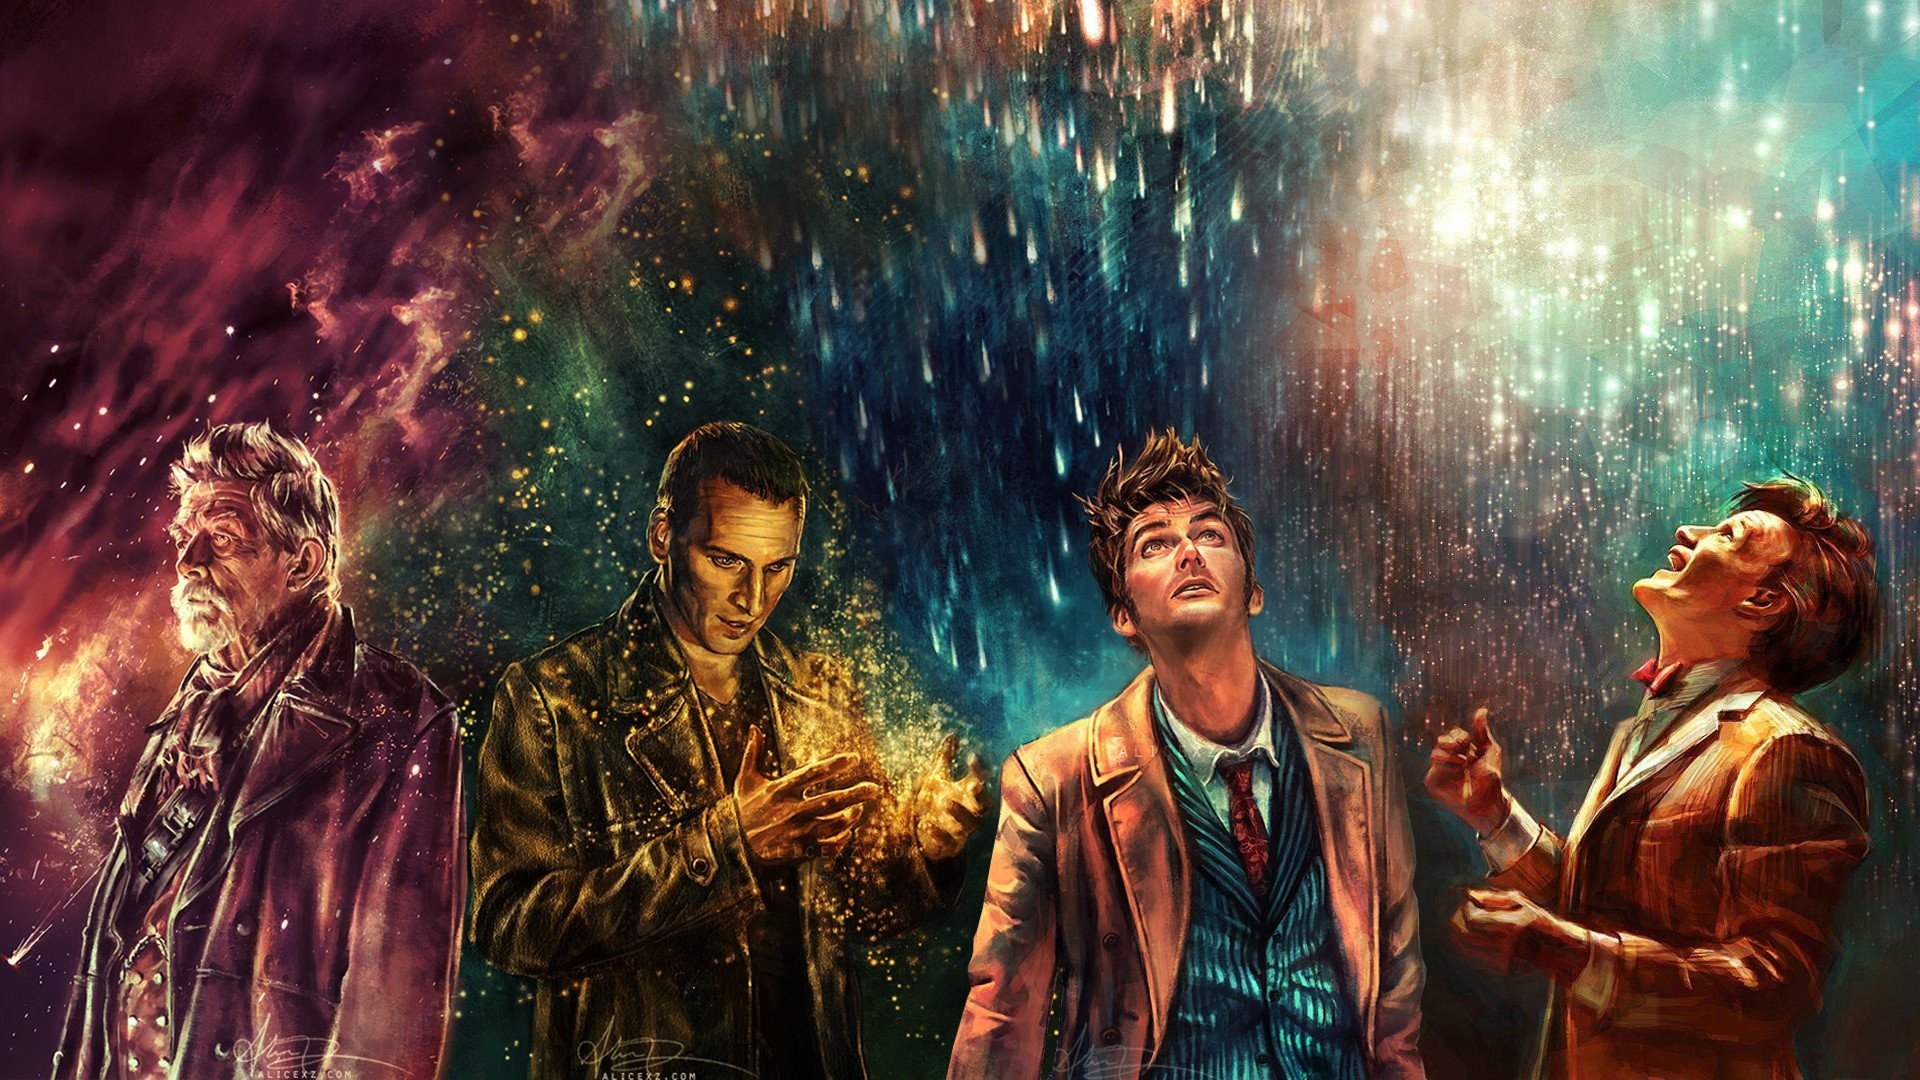 Dr Who Wallpaper Doctor Who Alice X Zhang 1920x1080 Wallpaper Teahub Io